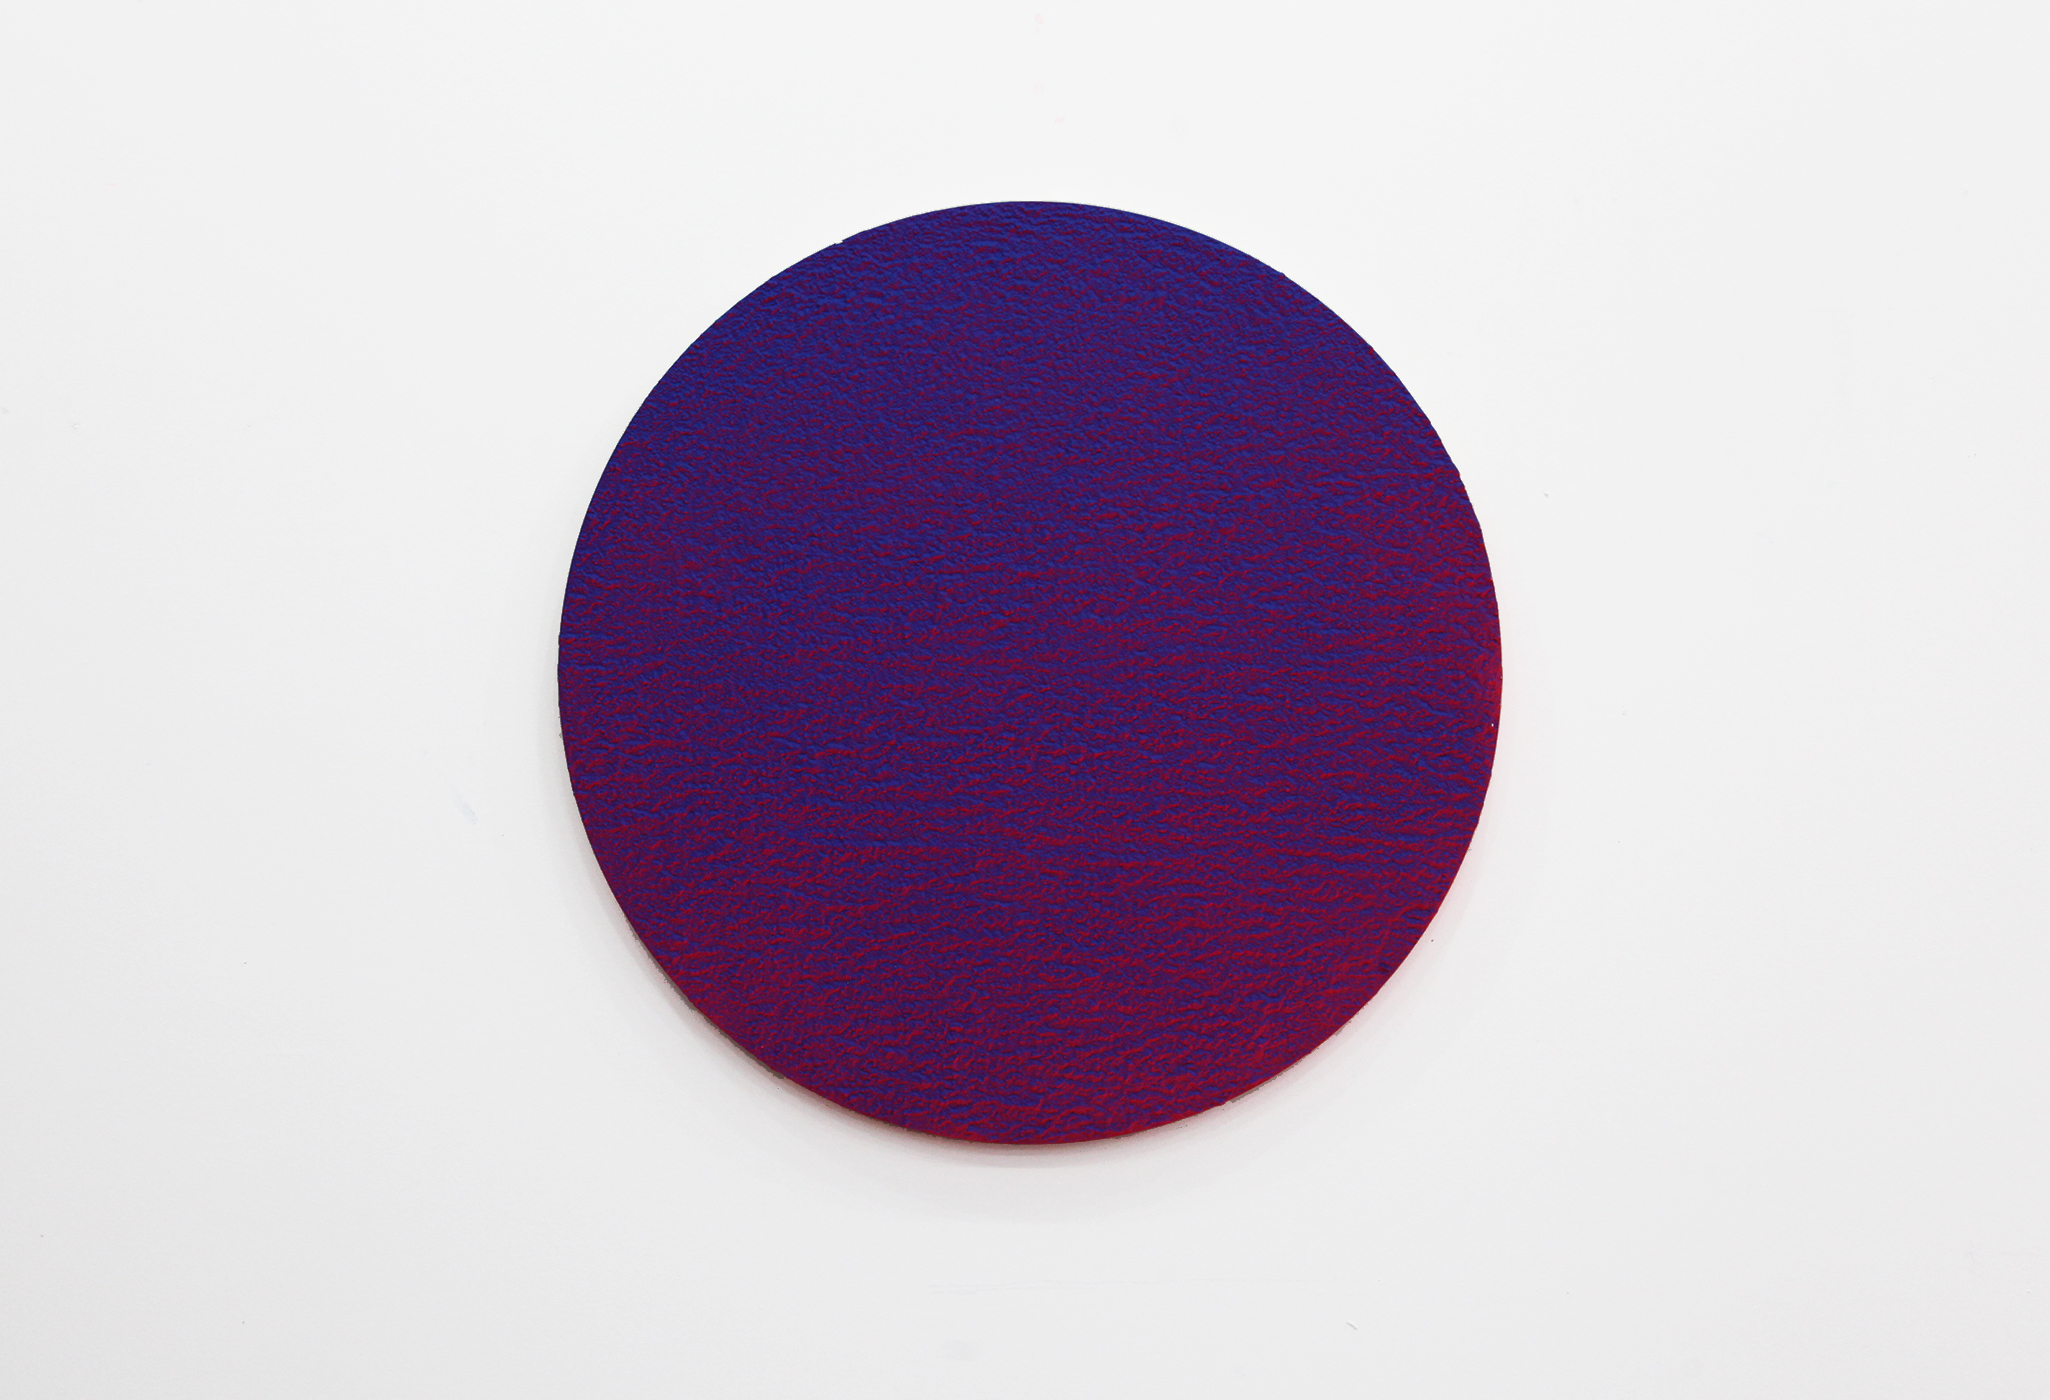 """Pierre Julien,  In the Deepest Oceans - C001 , 2018, stucco, acrylic and spray paint on wood panel, 30"""" (76 cm) of diameter"""